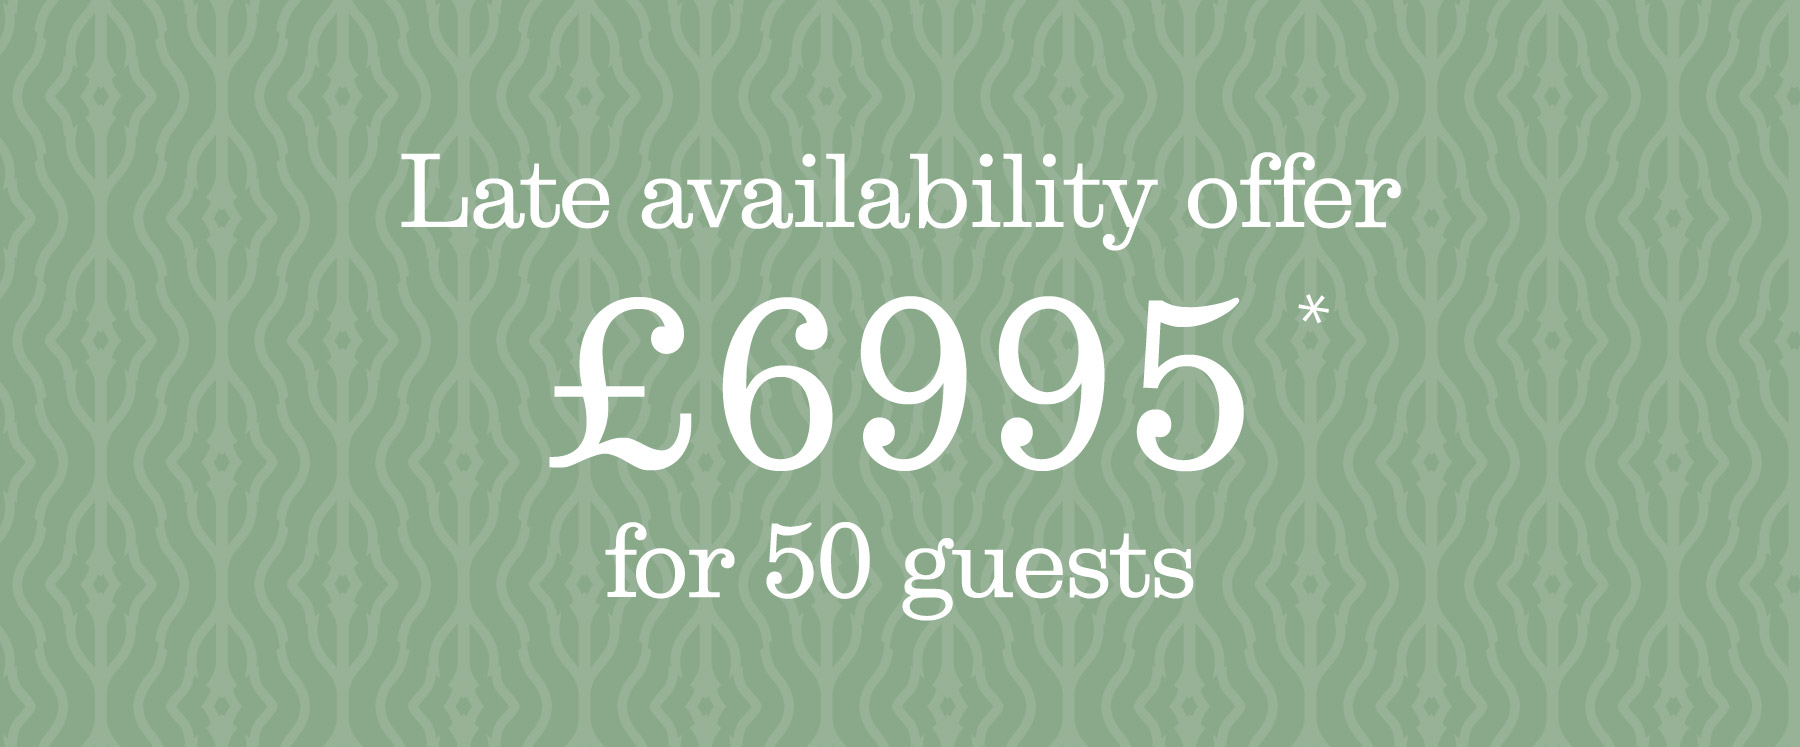 Late Availability Offer at Holbrook Manor